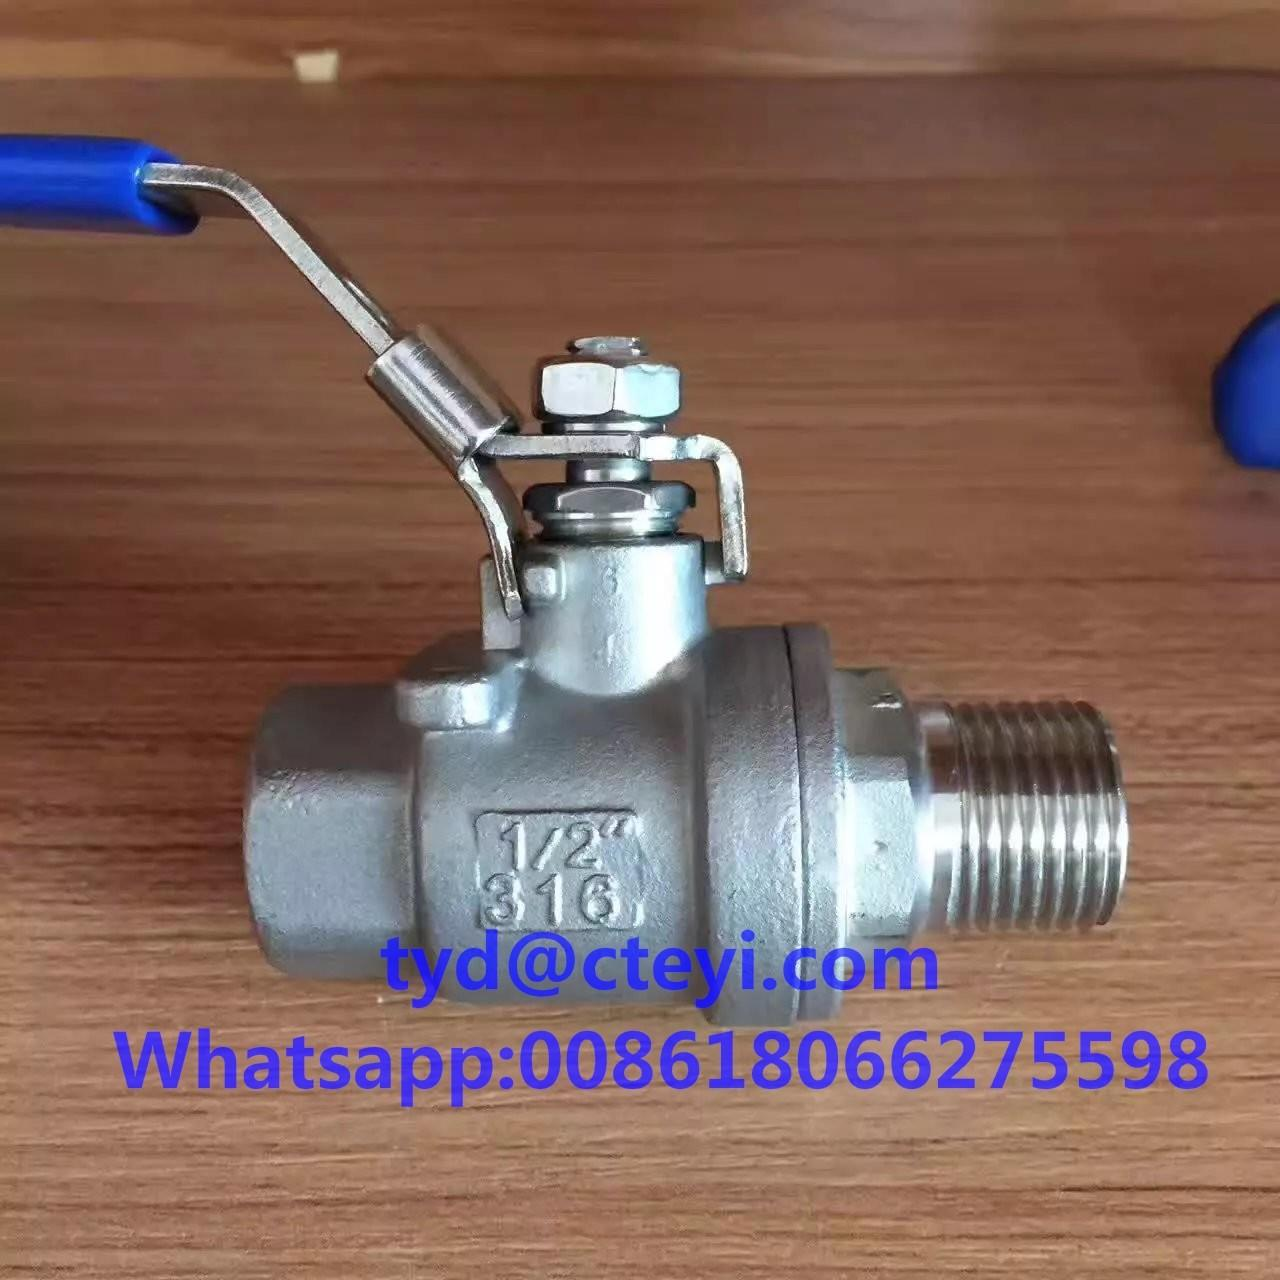 1000WOG 316 Stainless Steel Ball Valves , Full Port Male Female NPT Thread 2pc